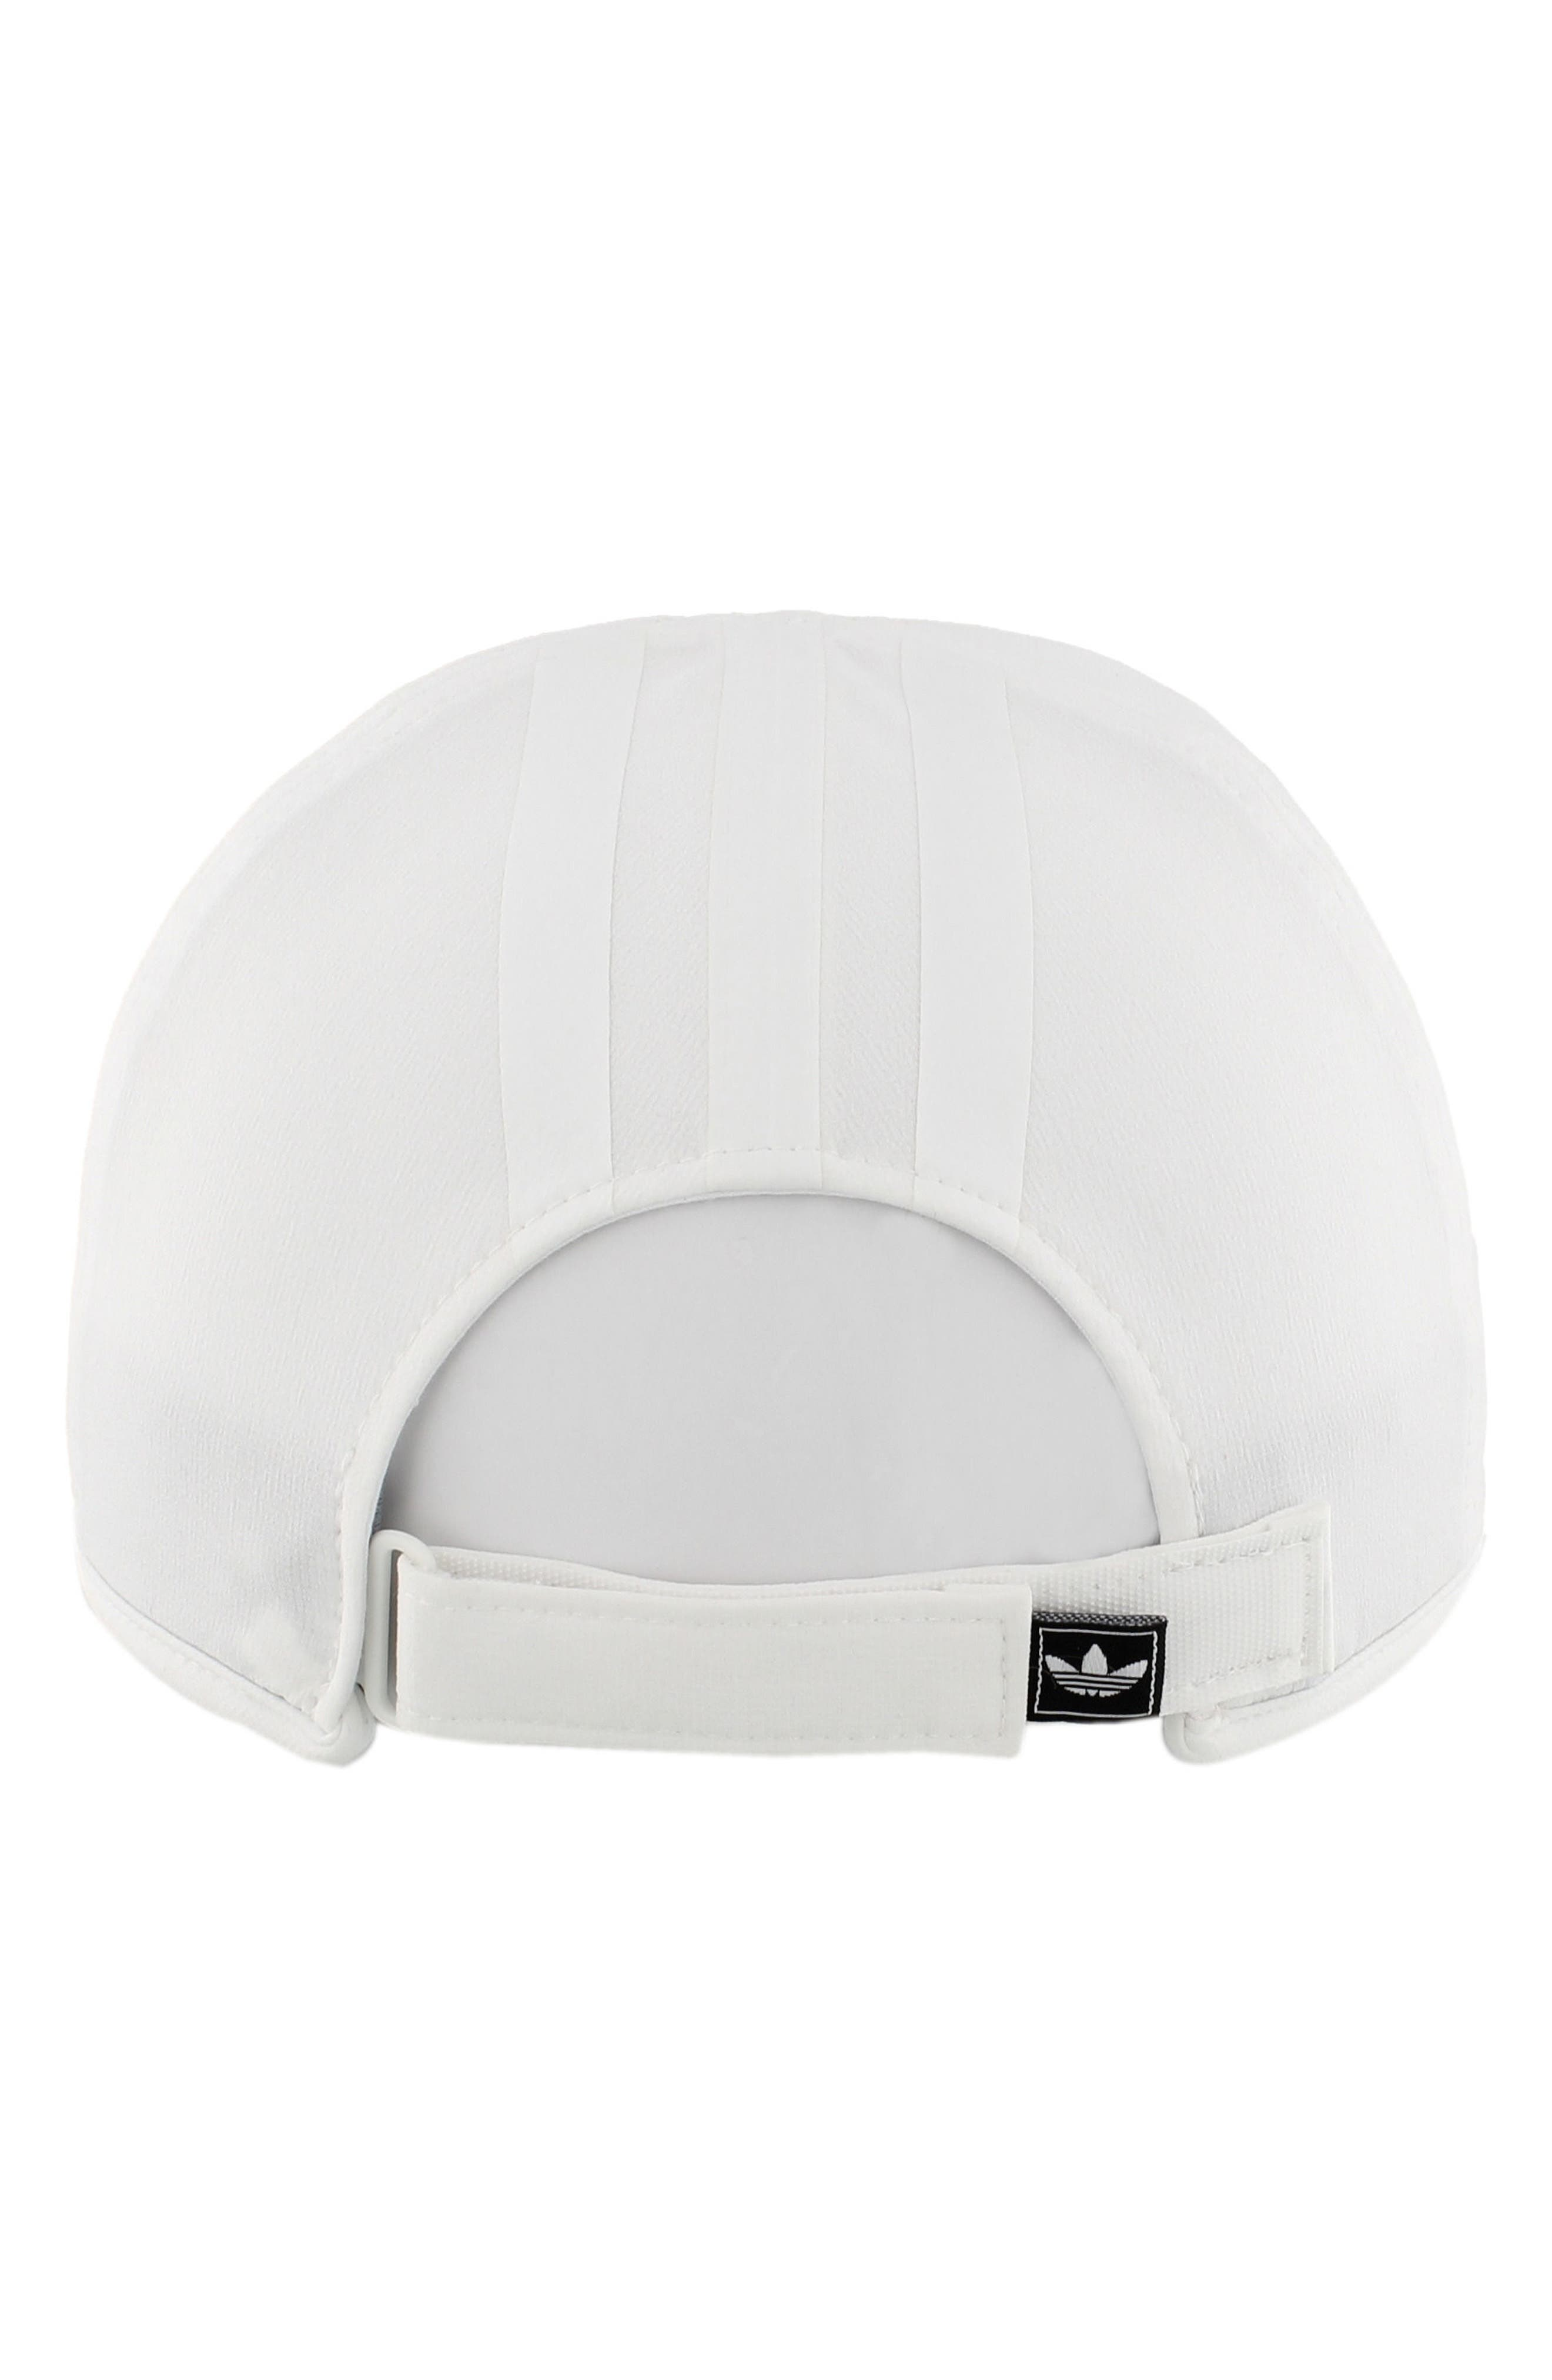 EQT Trainer Cap,                             Alternate thumbnail 5, color,                             White